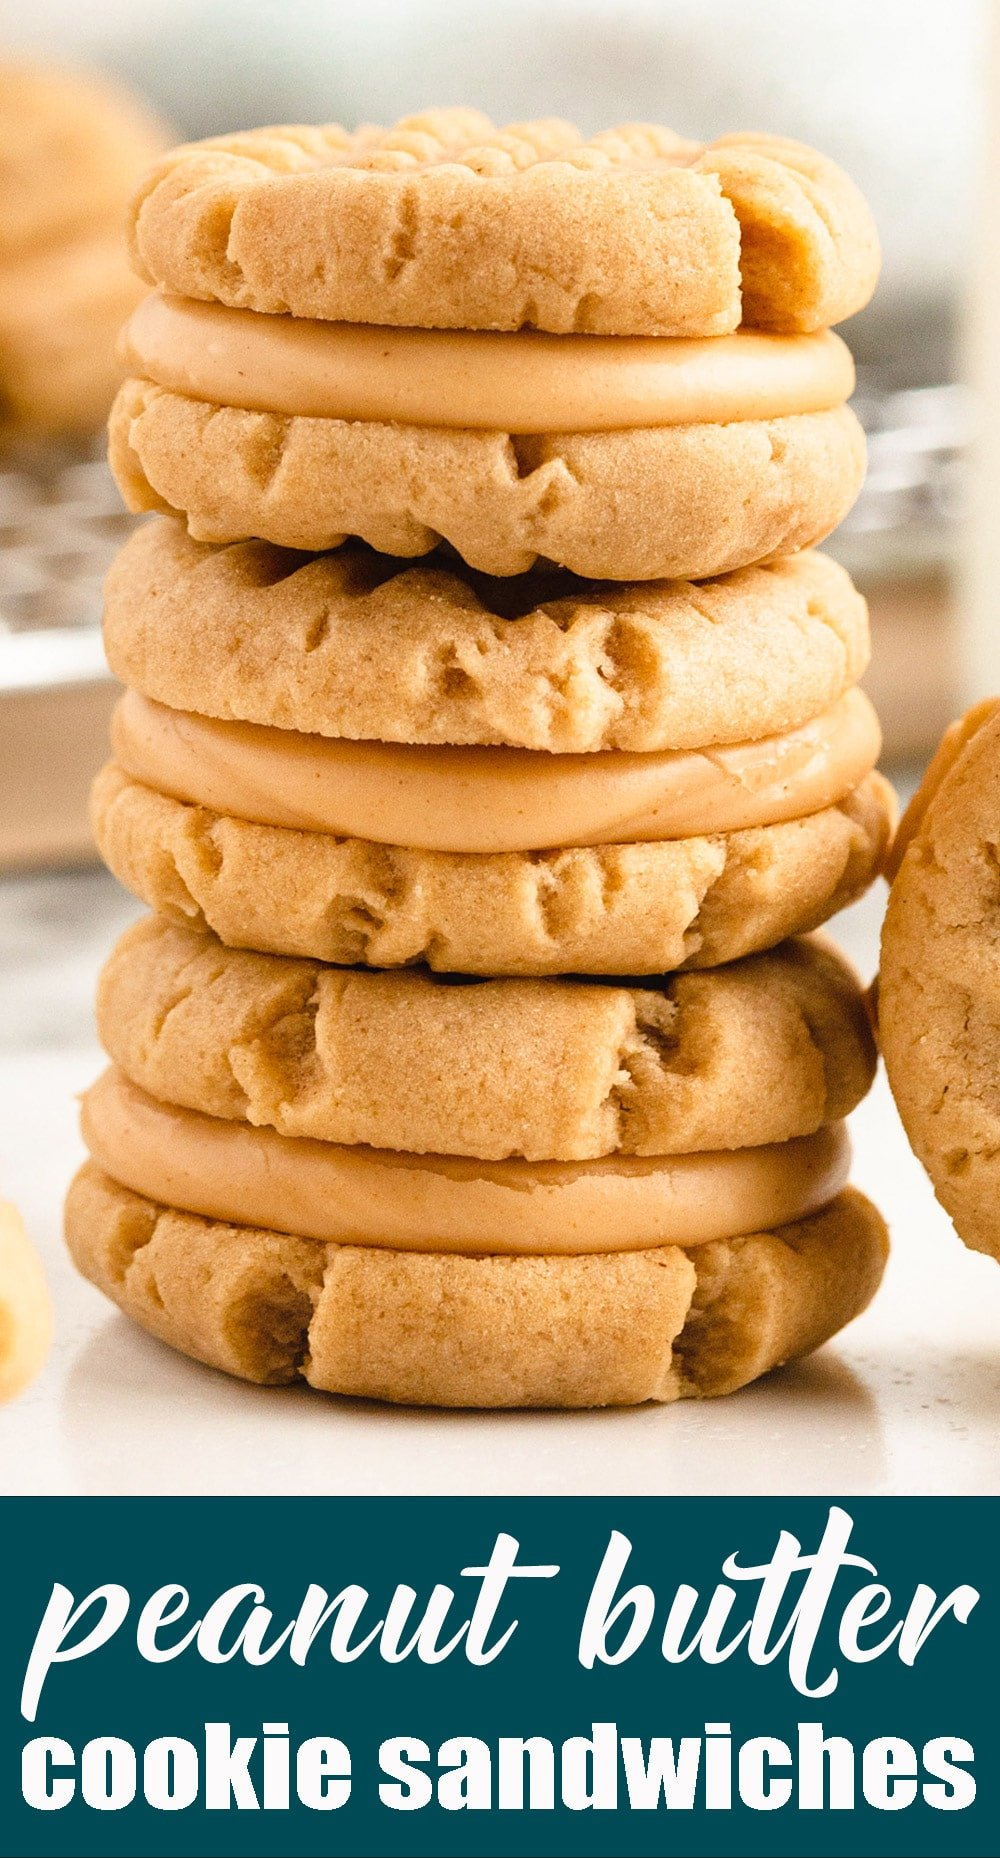 Soft, peanut butter sandwich cookies filled with a sweet peanut butter cream. These bite-size cookies from Amish country are perfect for gift giving. via @tastesoflizzyt